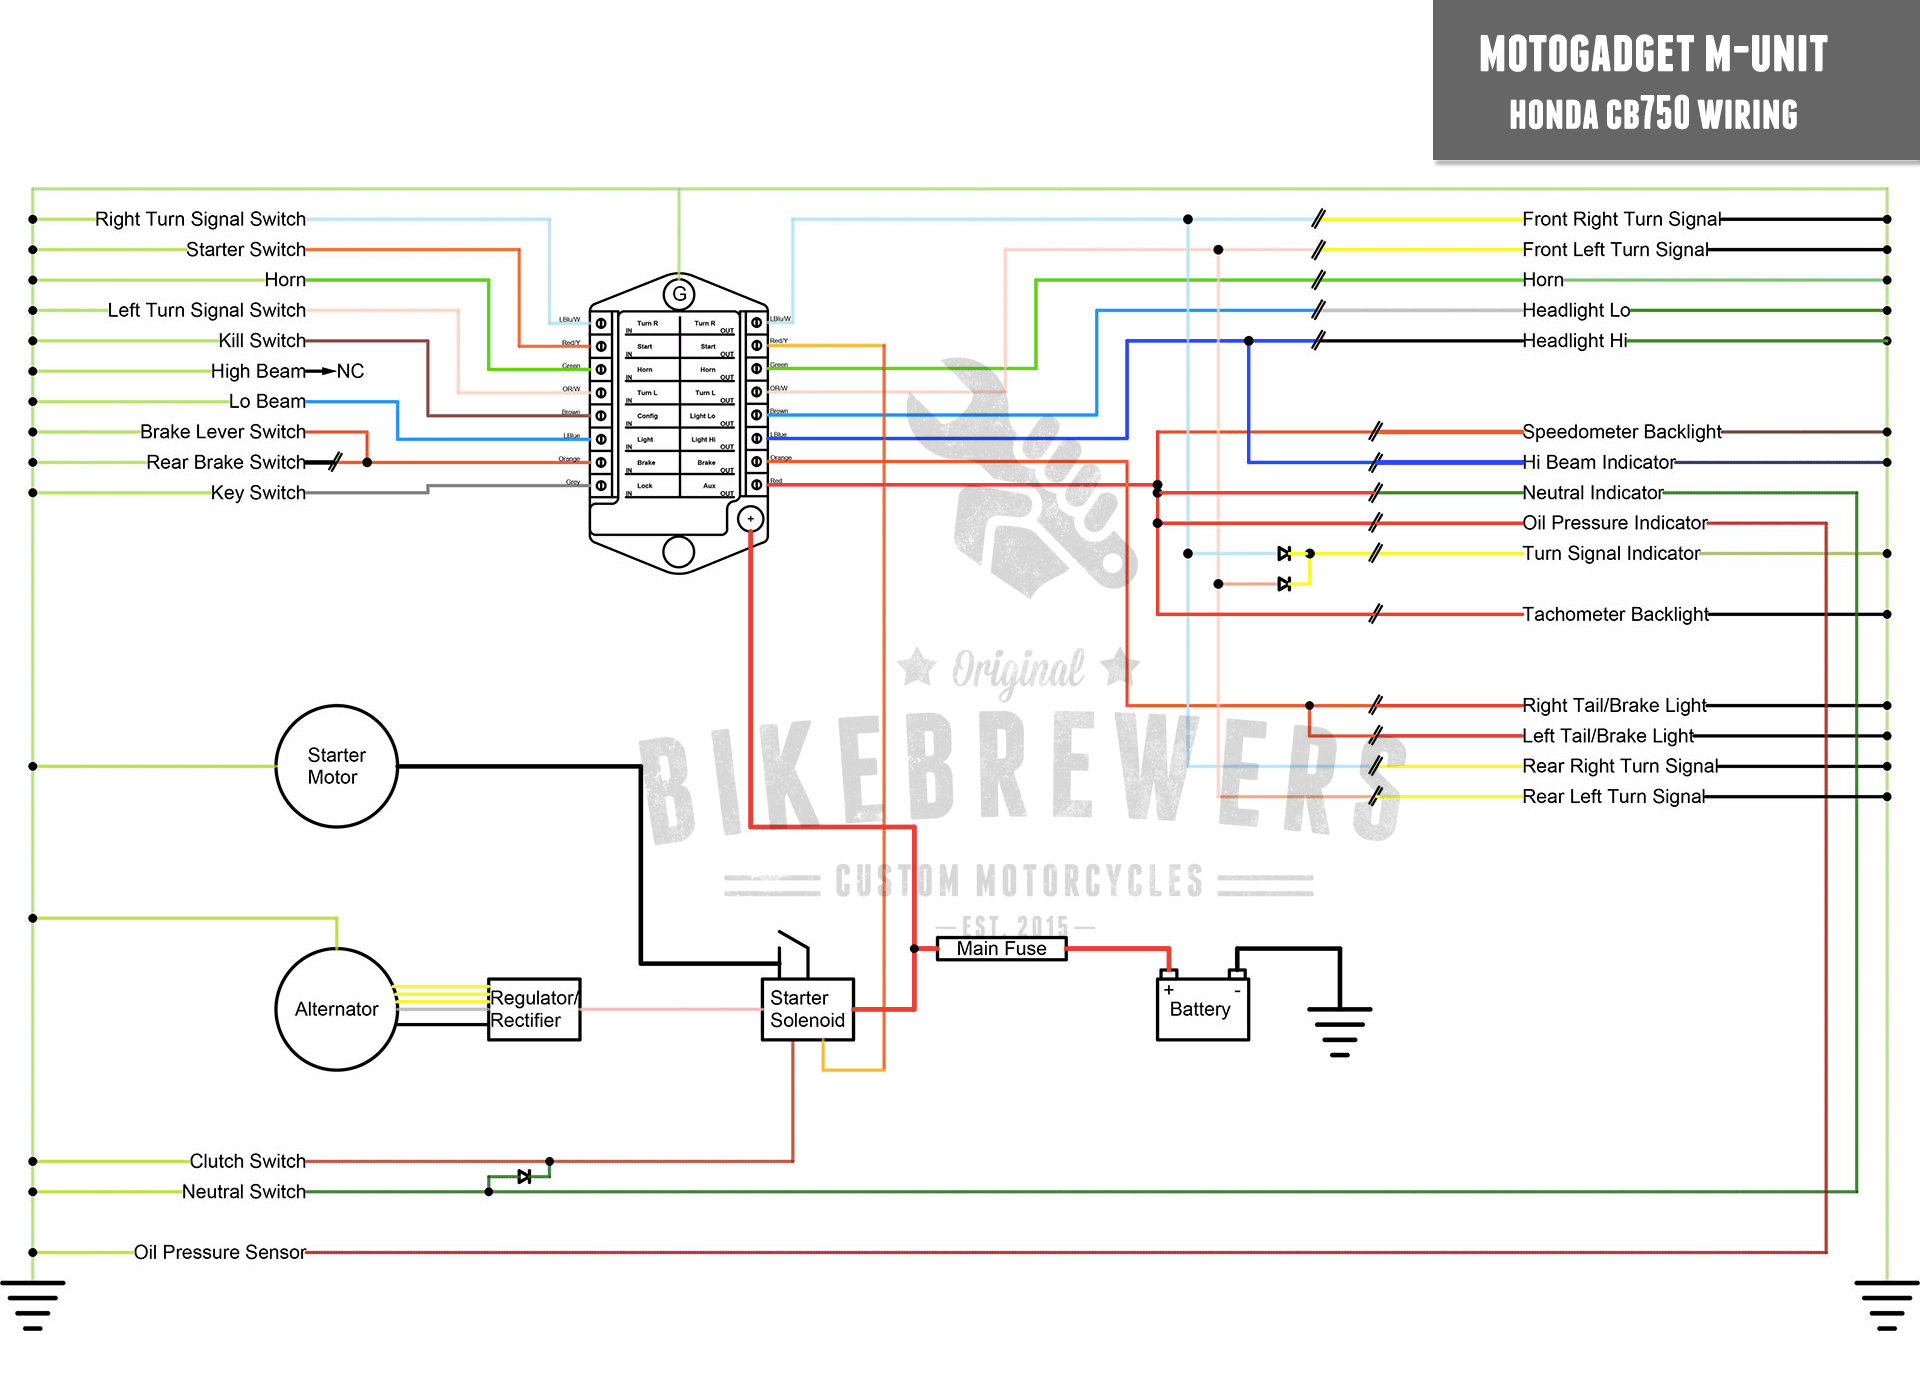 MotoGadget Wiring Honda CB750 motogadget m unit wiring bikebrewers com 1980 suzuki gs550 wiring diagram at arjmand.co